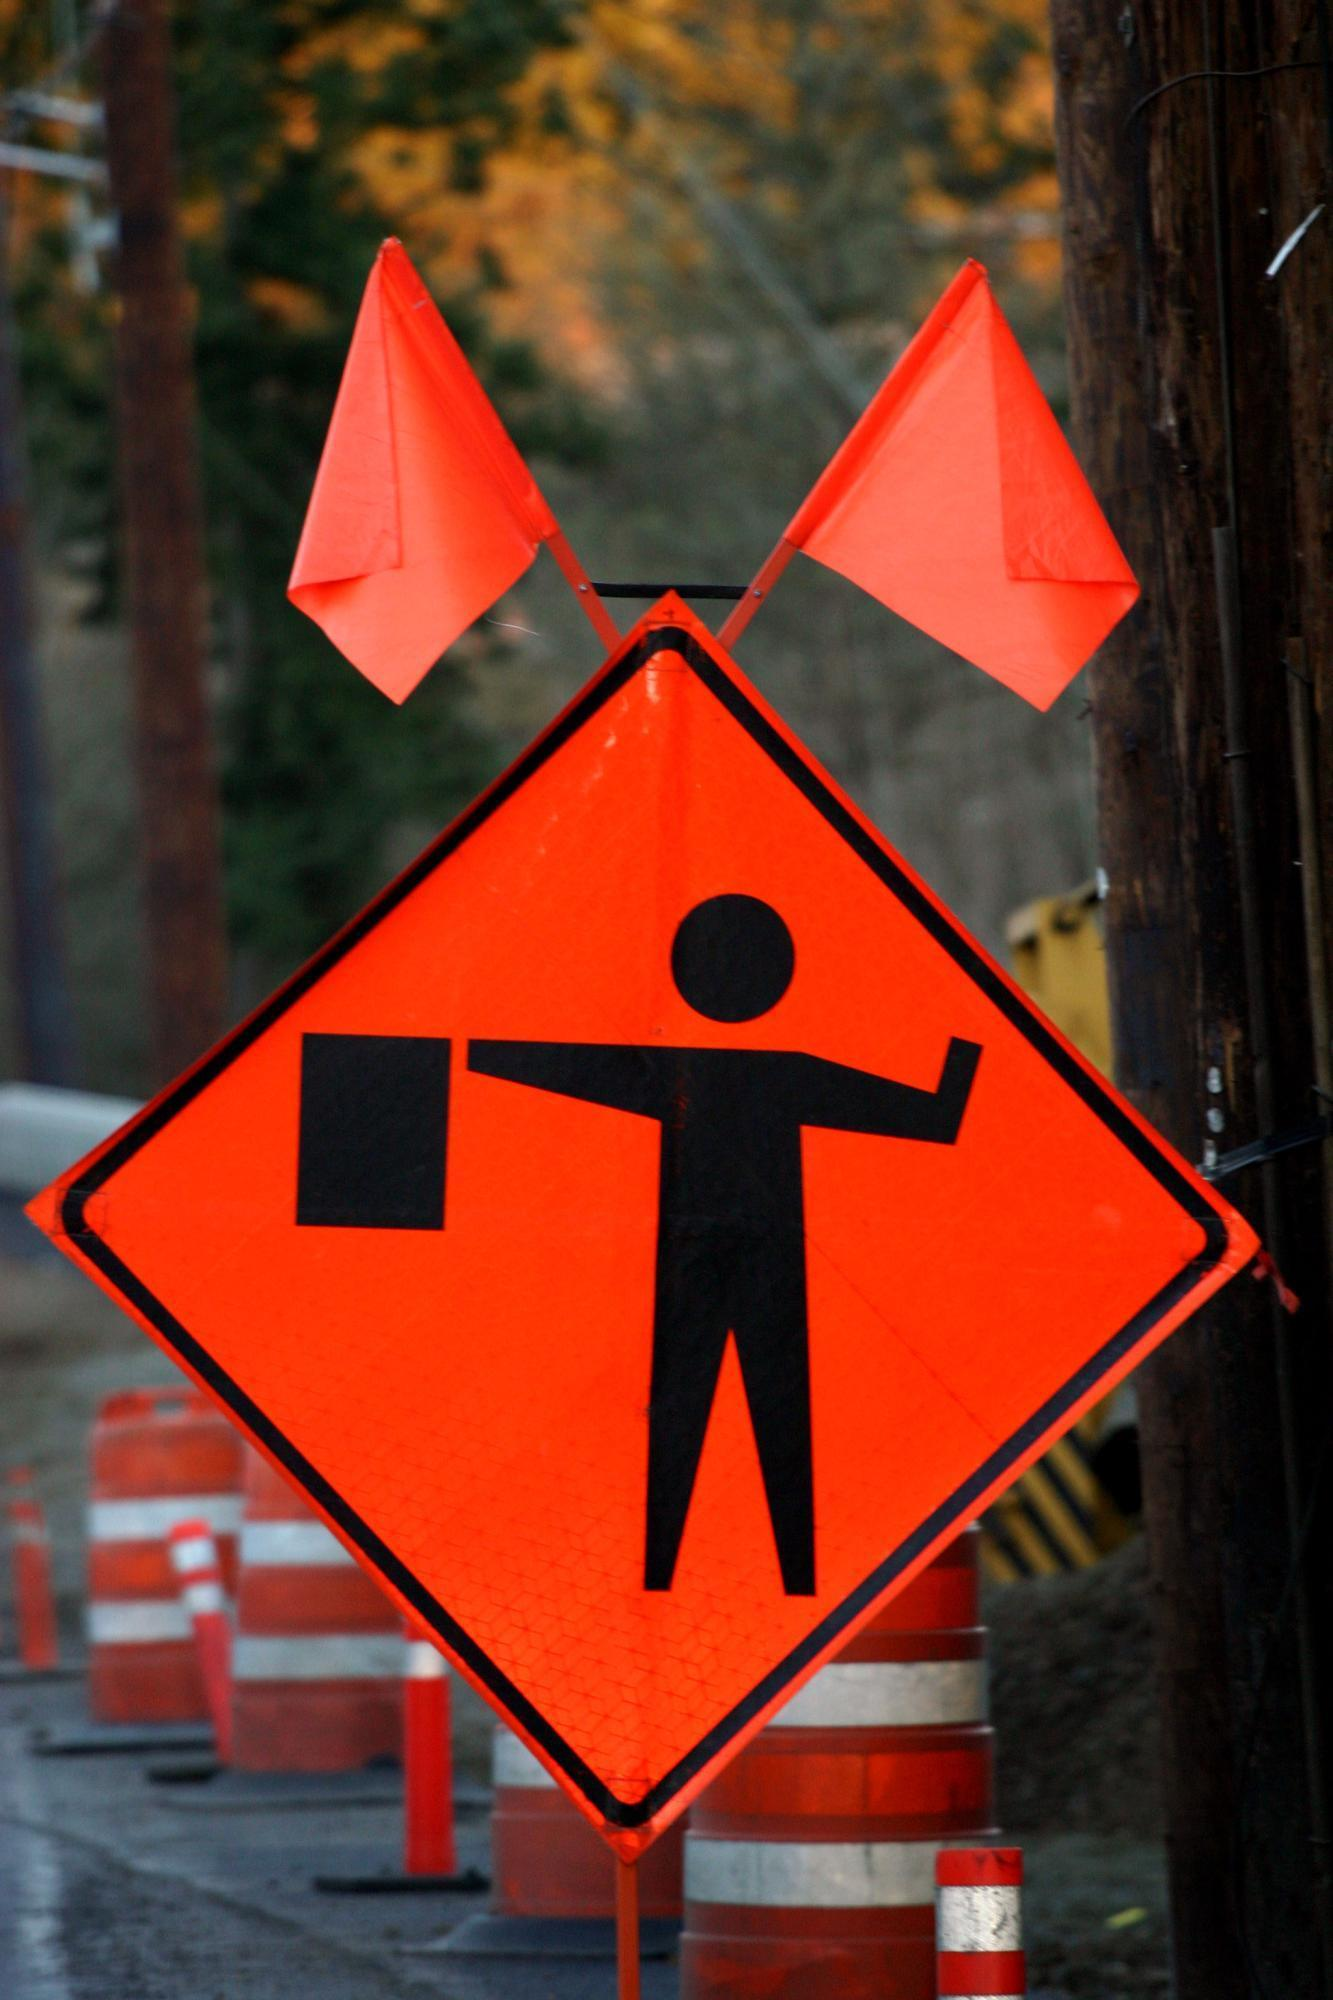 flagger, road work, construction site, traffic